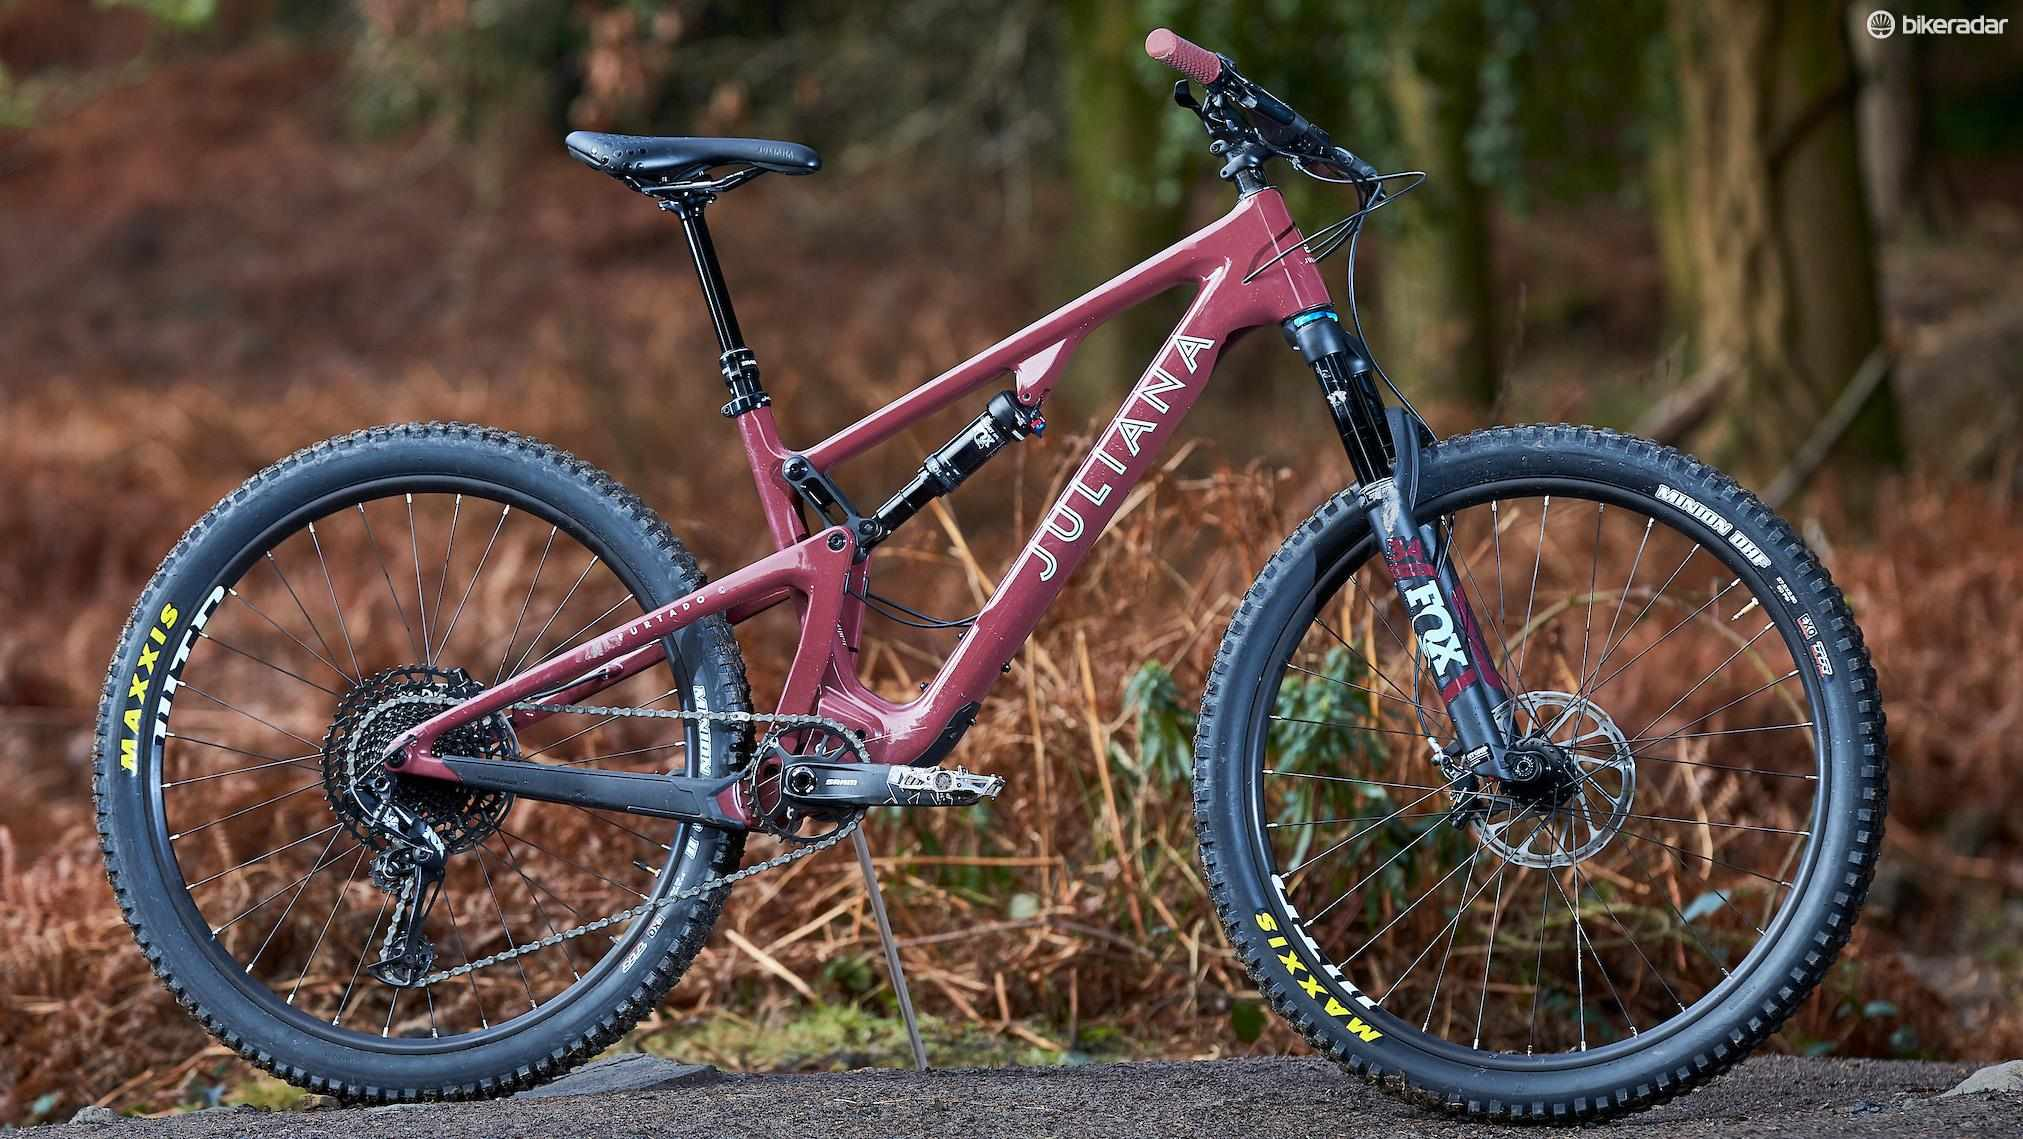 A side-on photograph of the dark red Juliana Furtado mountain bike standing in a forest